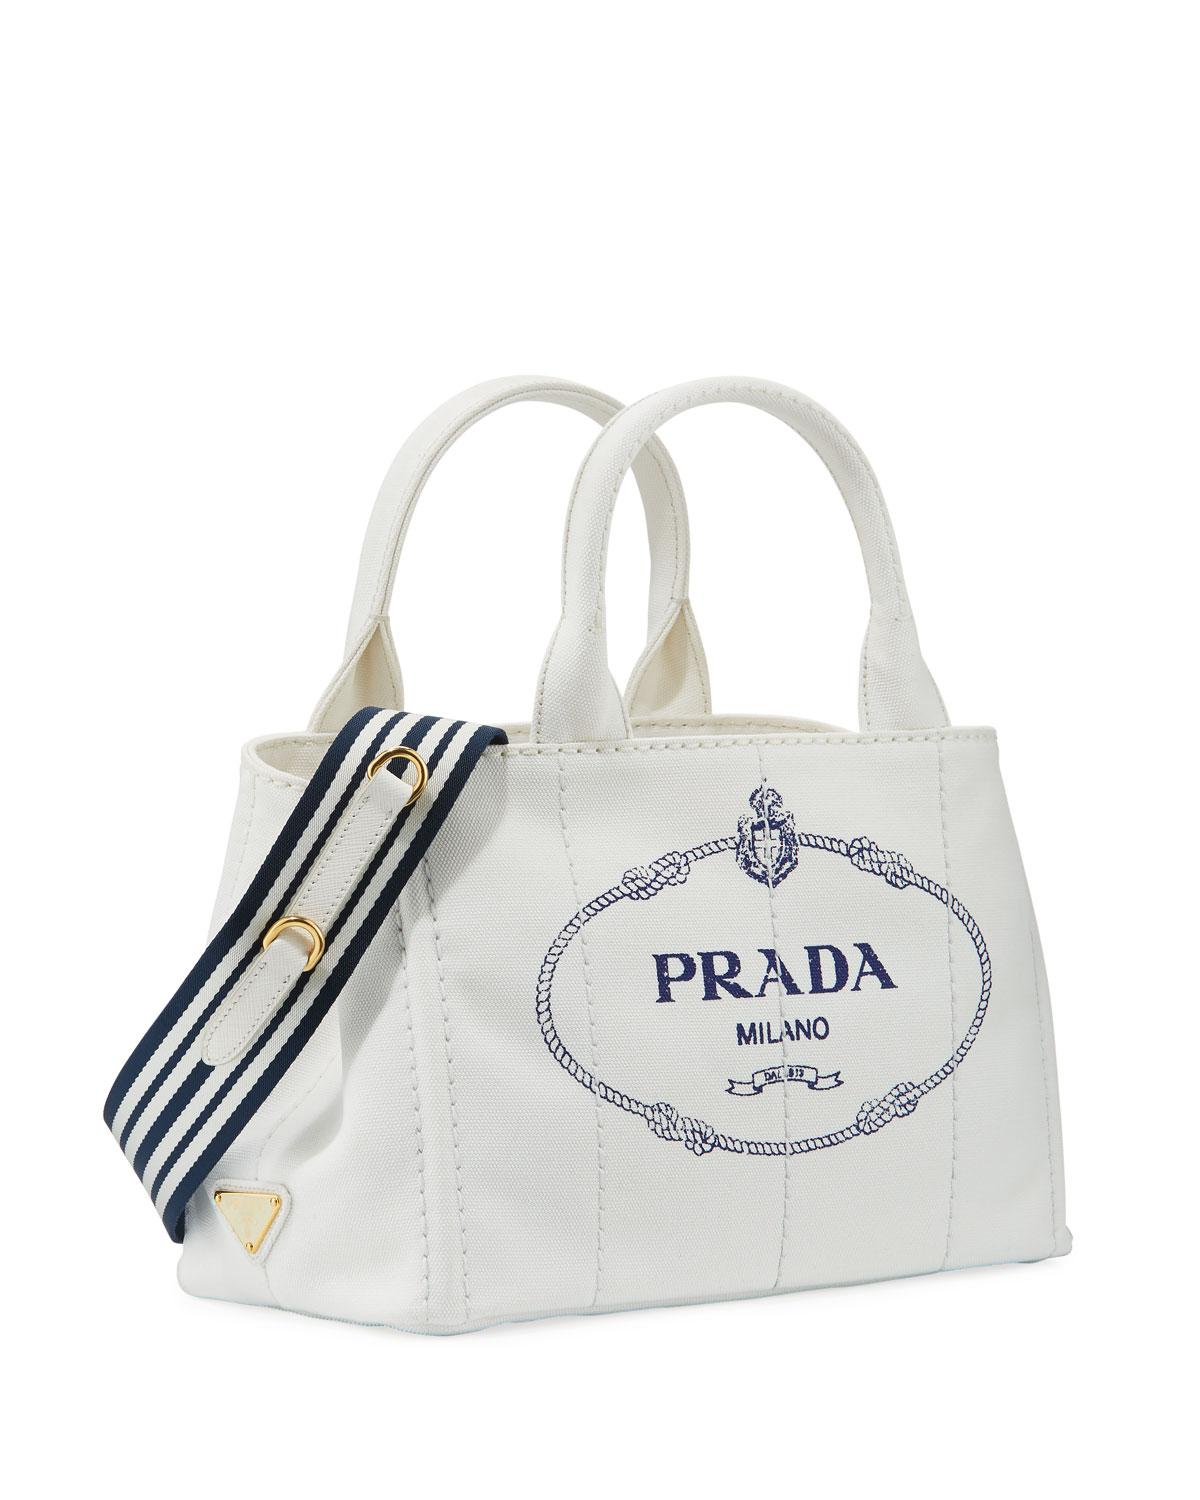 643b6438bec7 ... sale prada white small denim tote bag with logo lyst. view fullscreen  c35e4 d4459